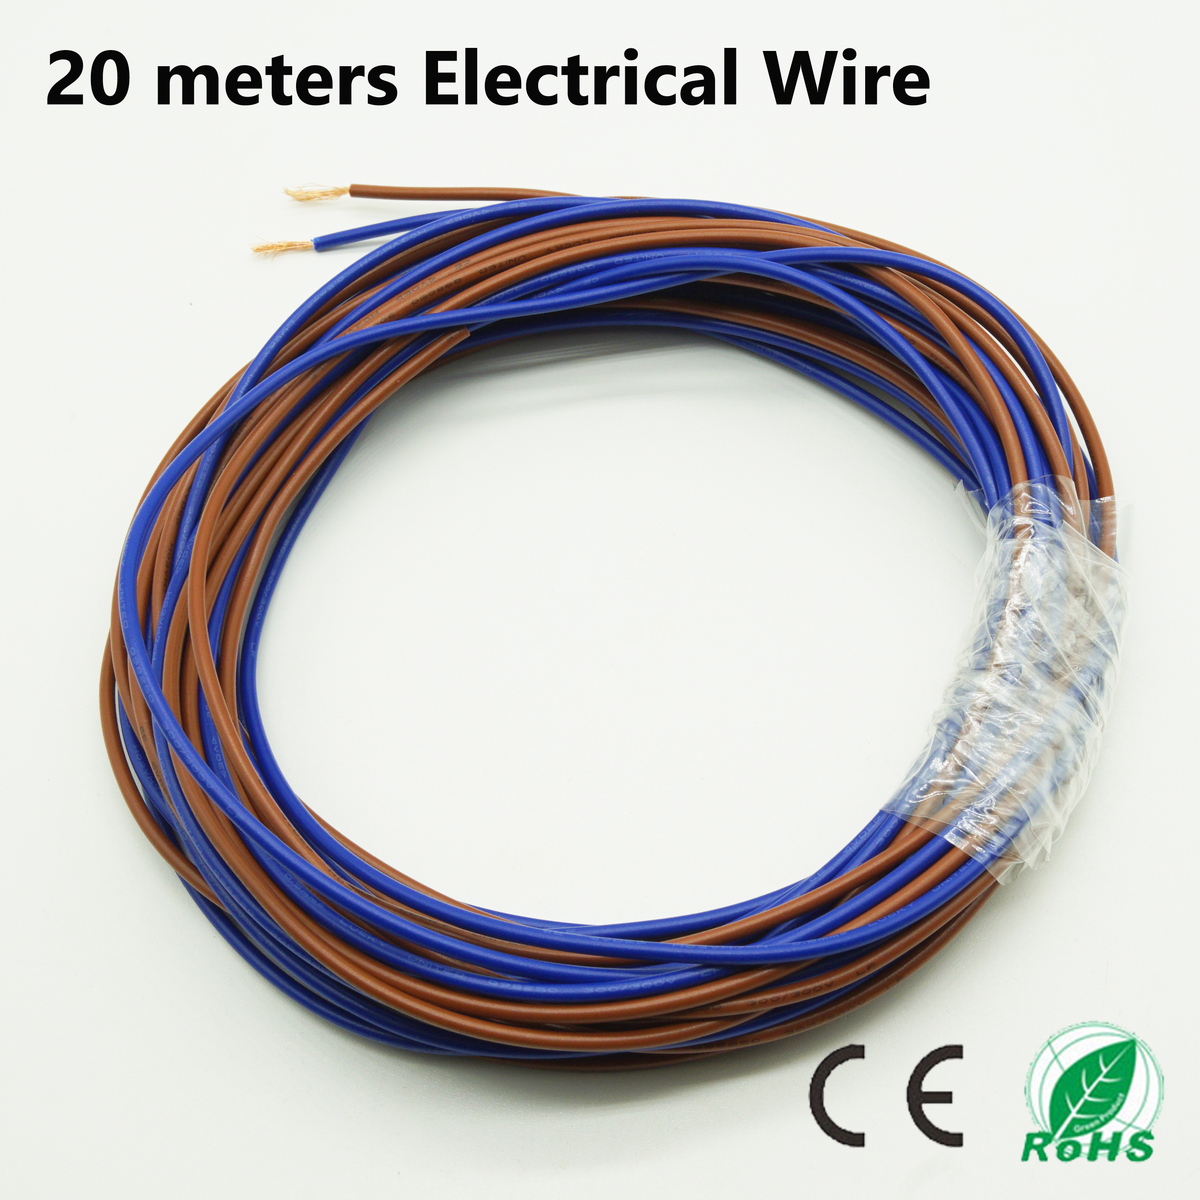 Electrical Wire Insulated Moldable : Meters electrical wire tinned copper pin awg